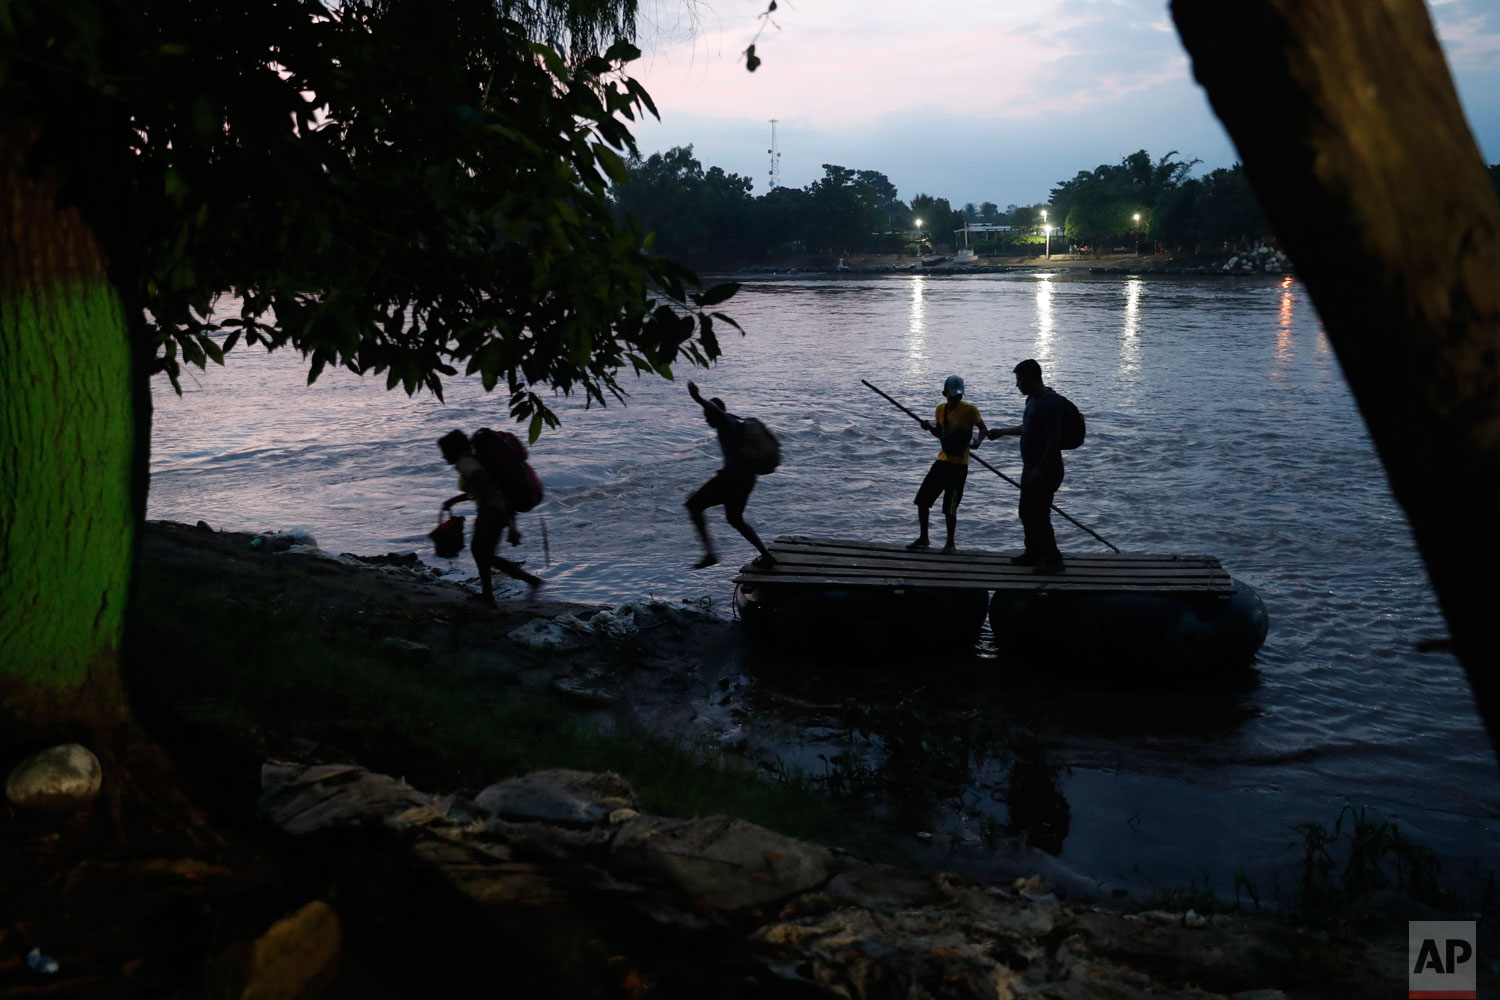 Migrants on rafts reach the Mexico shore after crossing the Suchiate river on the Guatemala – Mexico border, near Ciudad Hidalgo, Mexico, Wednesday, June 5, 2019. (AP Photo/Marco Ugarte)